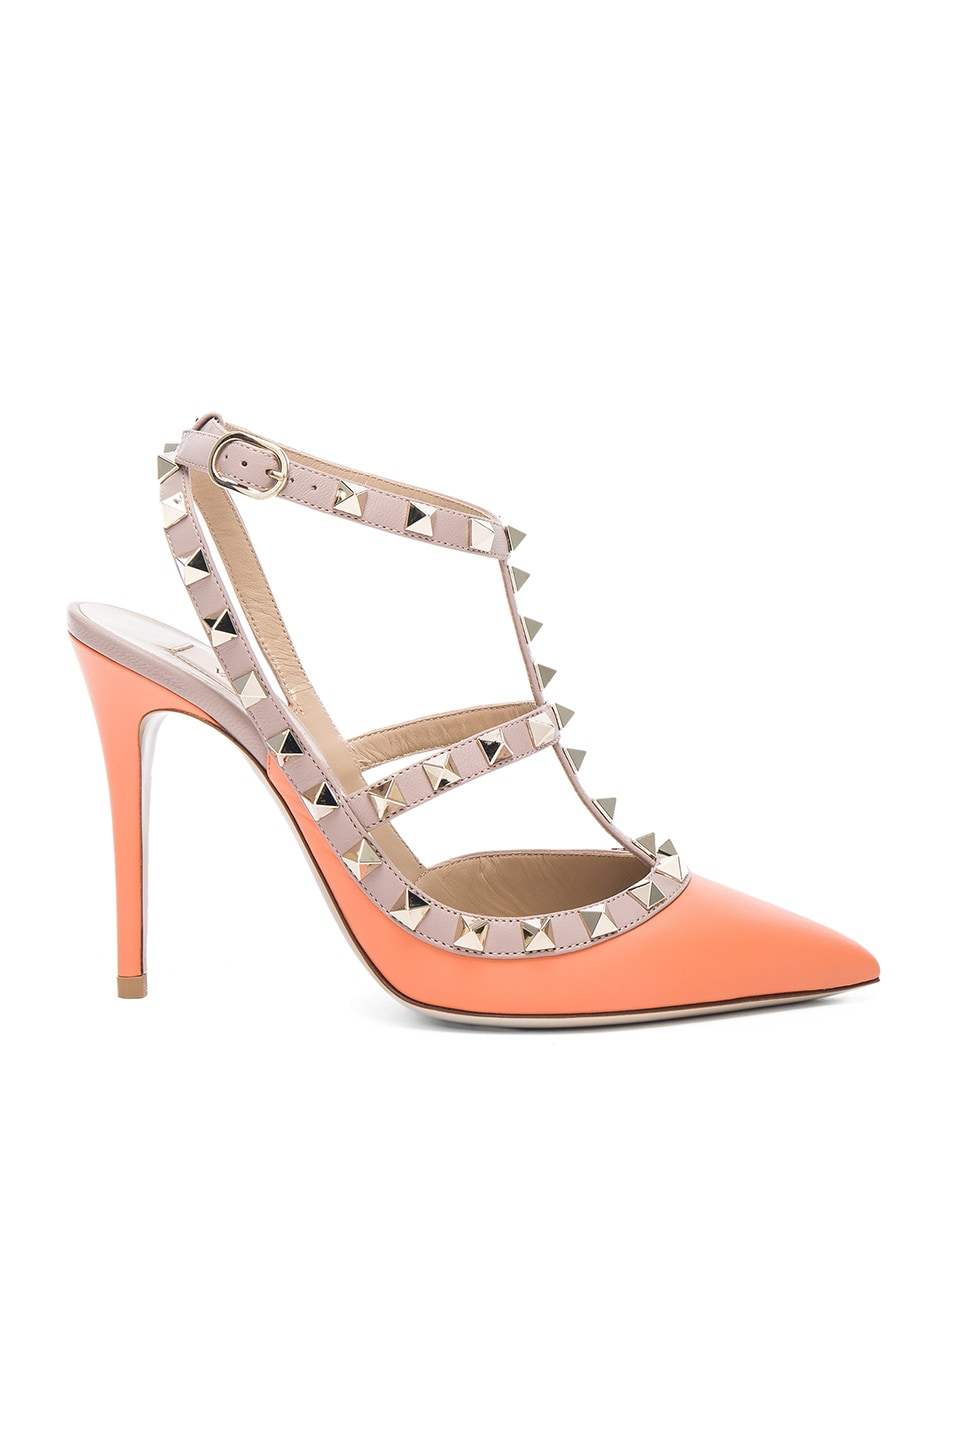 Image 1 of Valentino Rockstud Leather Slingbacks T.100 in Melon Sorbet